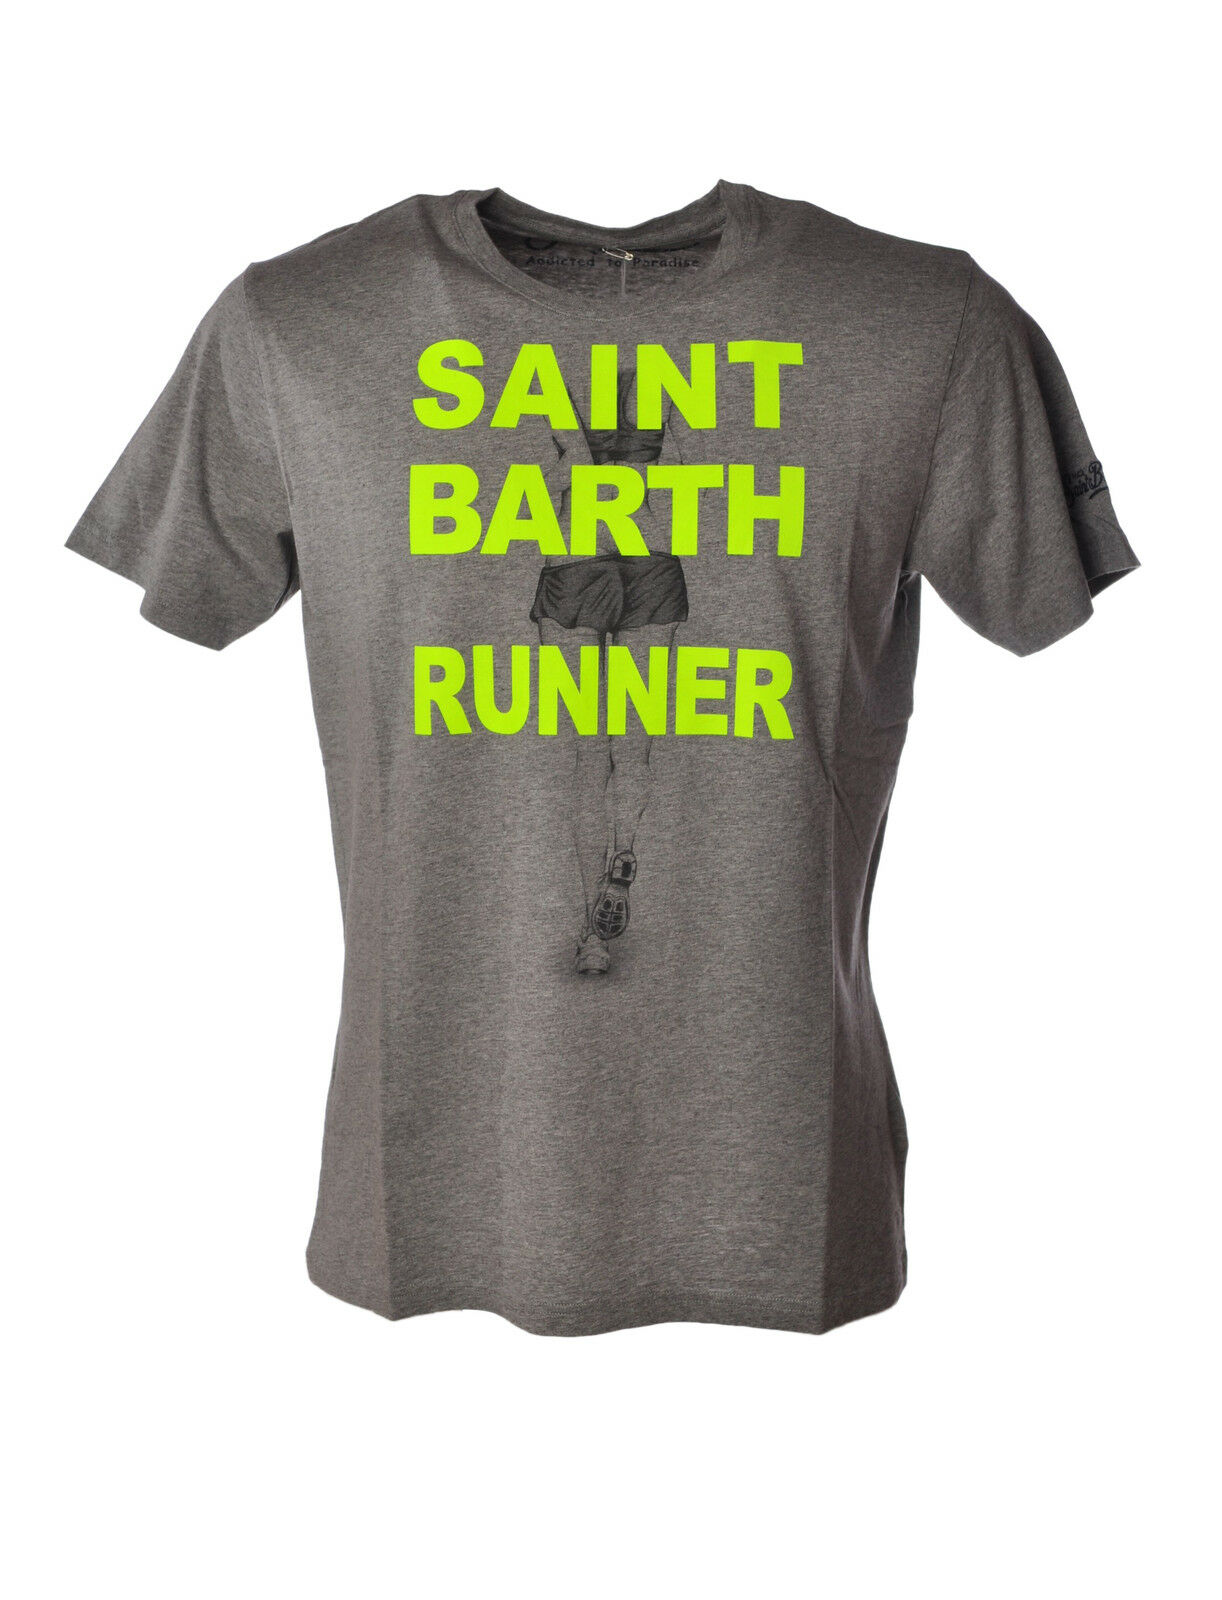 Saint Barth - Topwear-T-shirts - Man - Grau - 3497810C184215